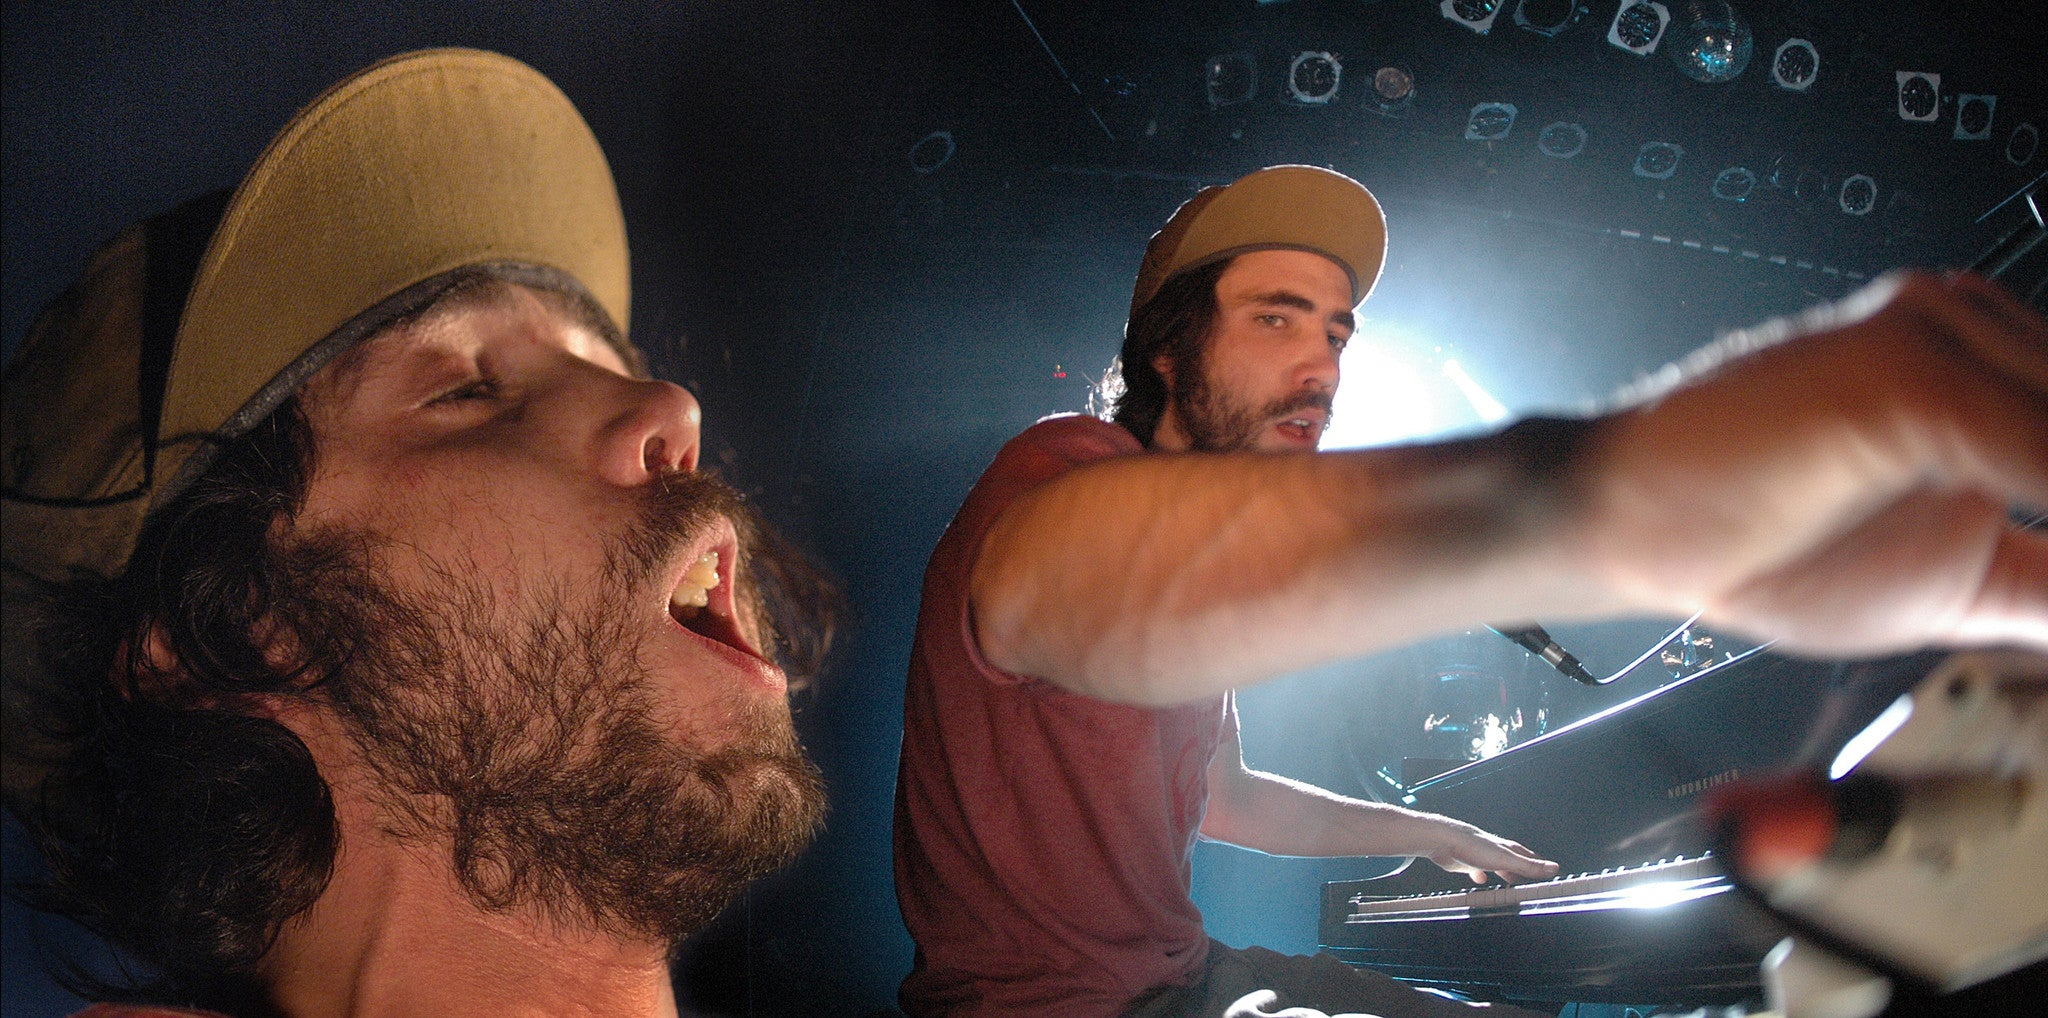 patrick watson photograph  by paul till patrick watson photo canada rap